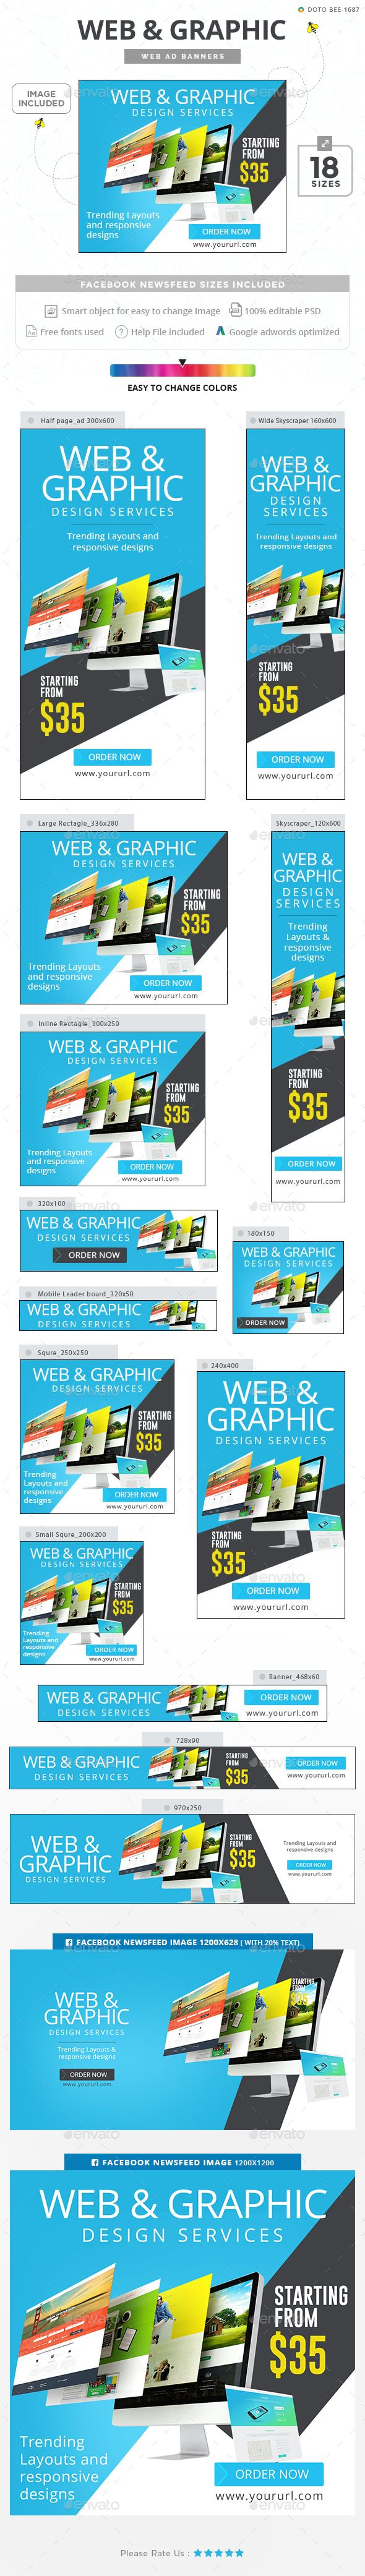 Web & Graphic Banners  — PSD Template #coupon #template • Download ➝ https://graphicriver.net/item/web-graphic-banners/18037282?ref=pxcr